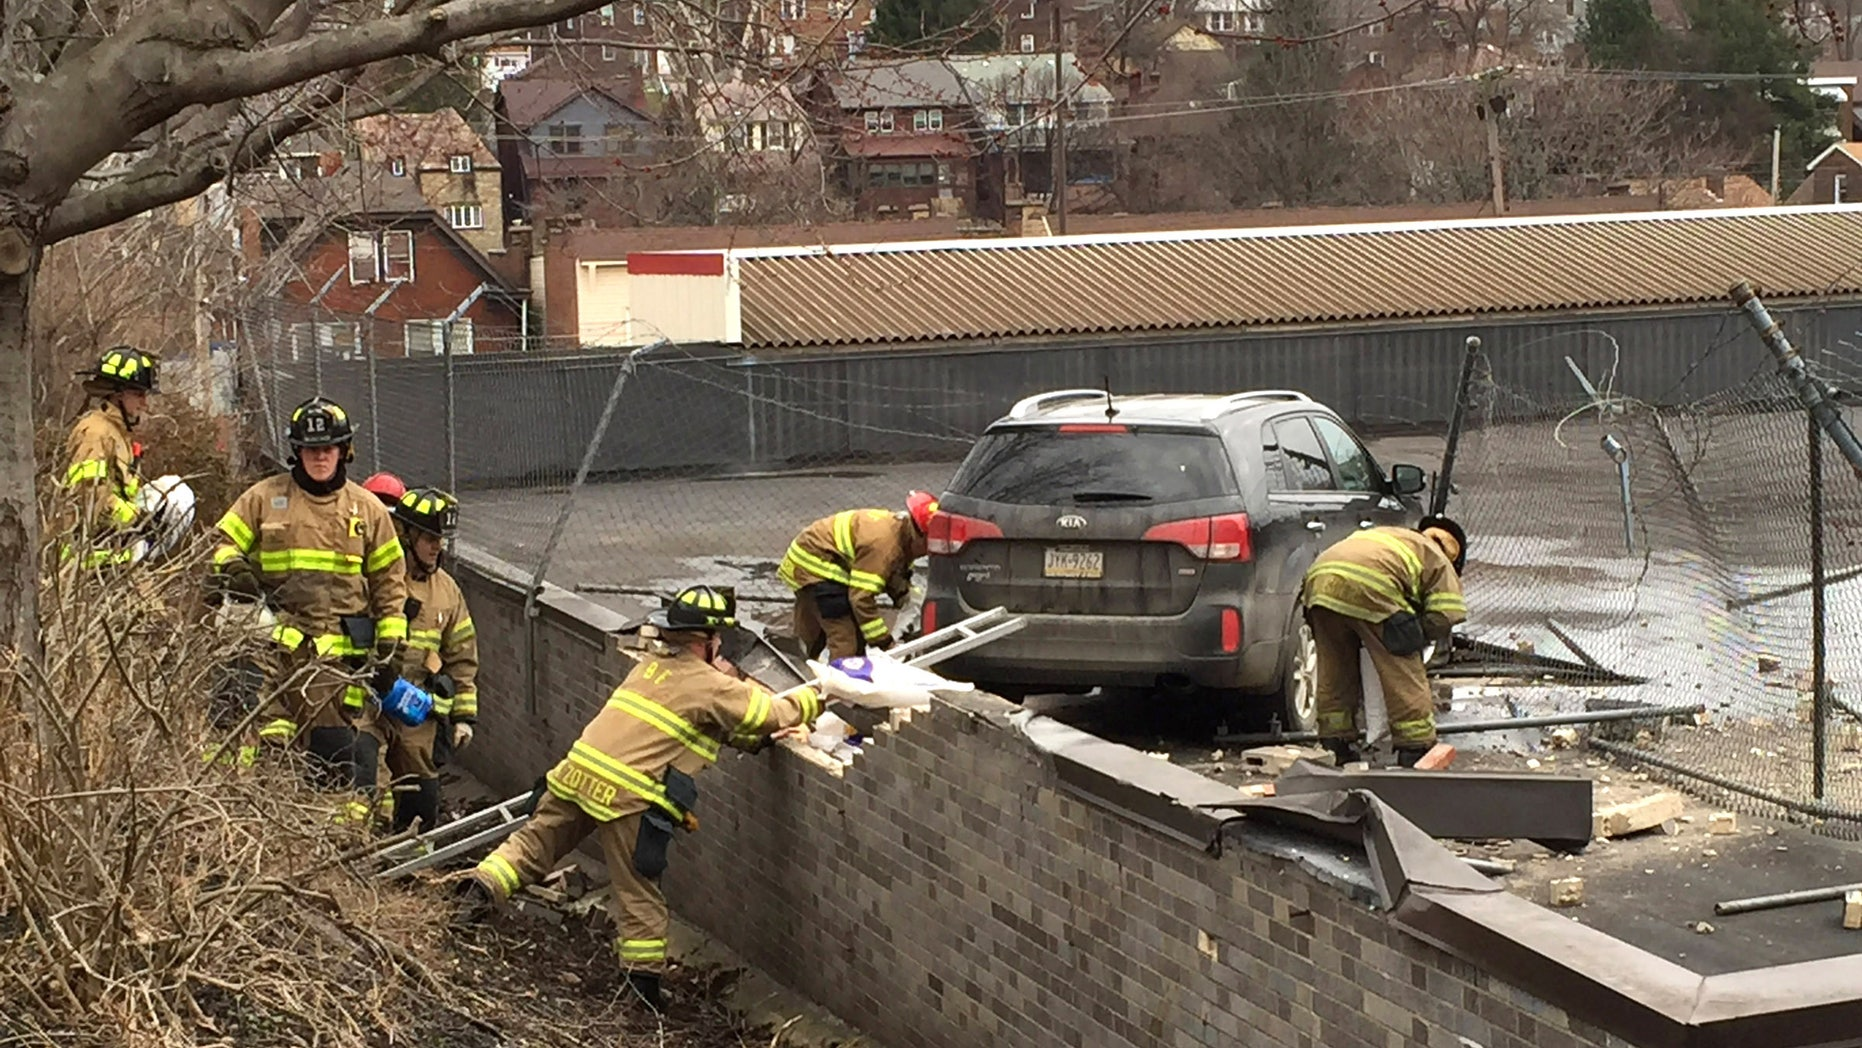 Emergency personnel check a vehicle that crashed onto the roof of a supermarket.